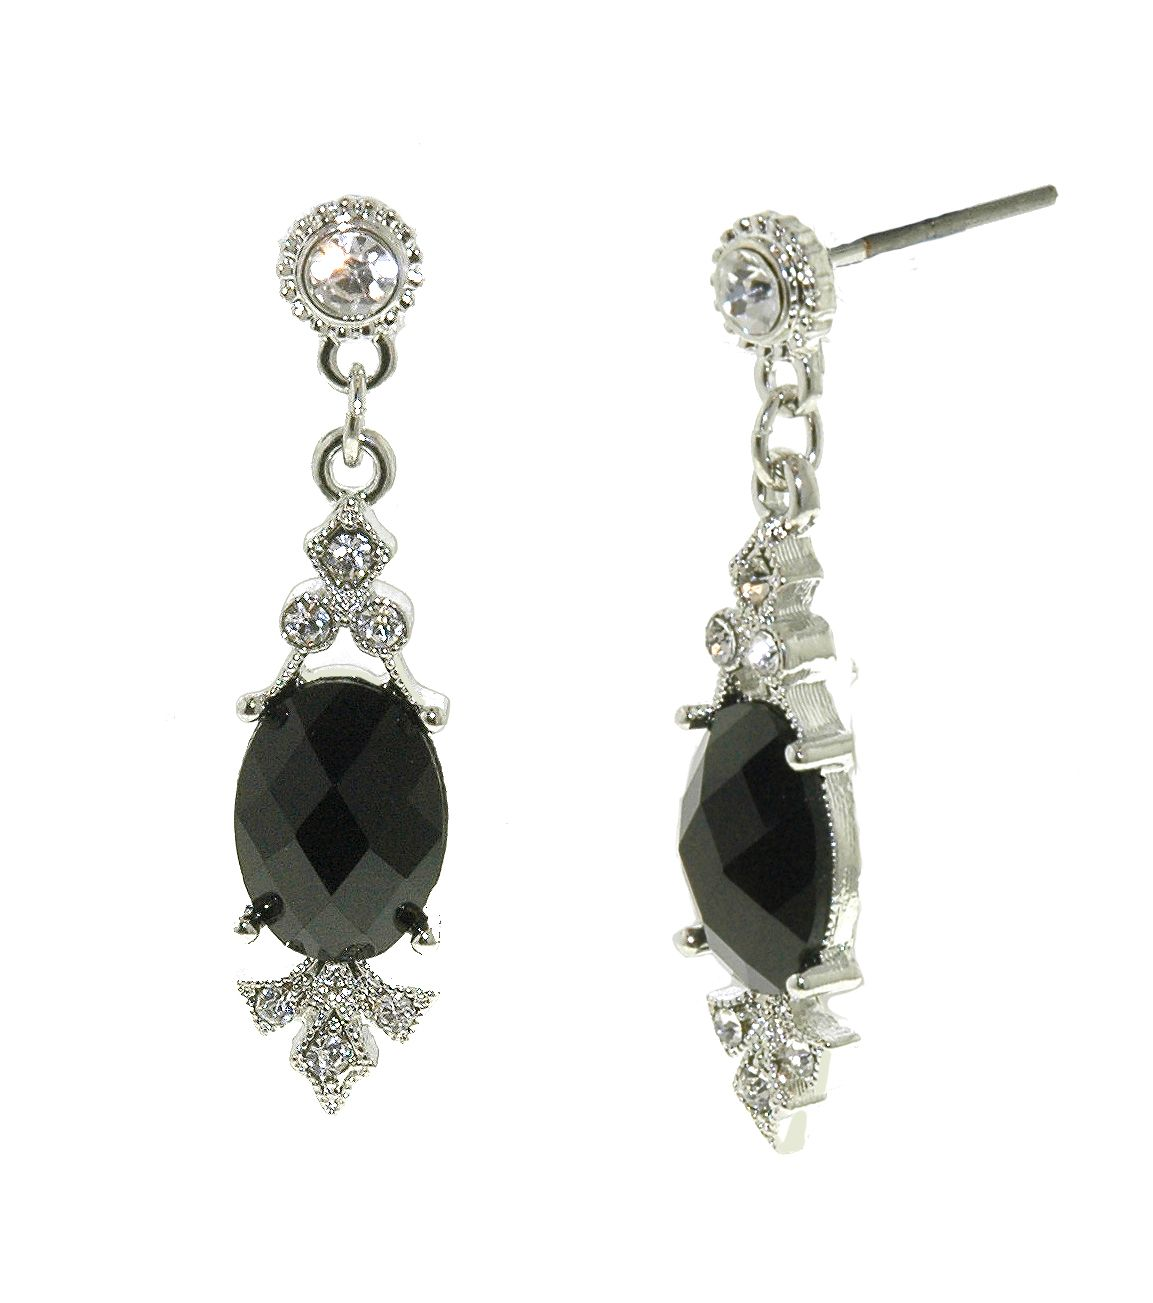 Silver & jet drop pierced earrings